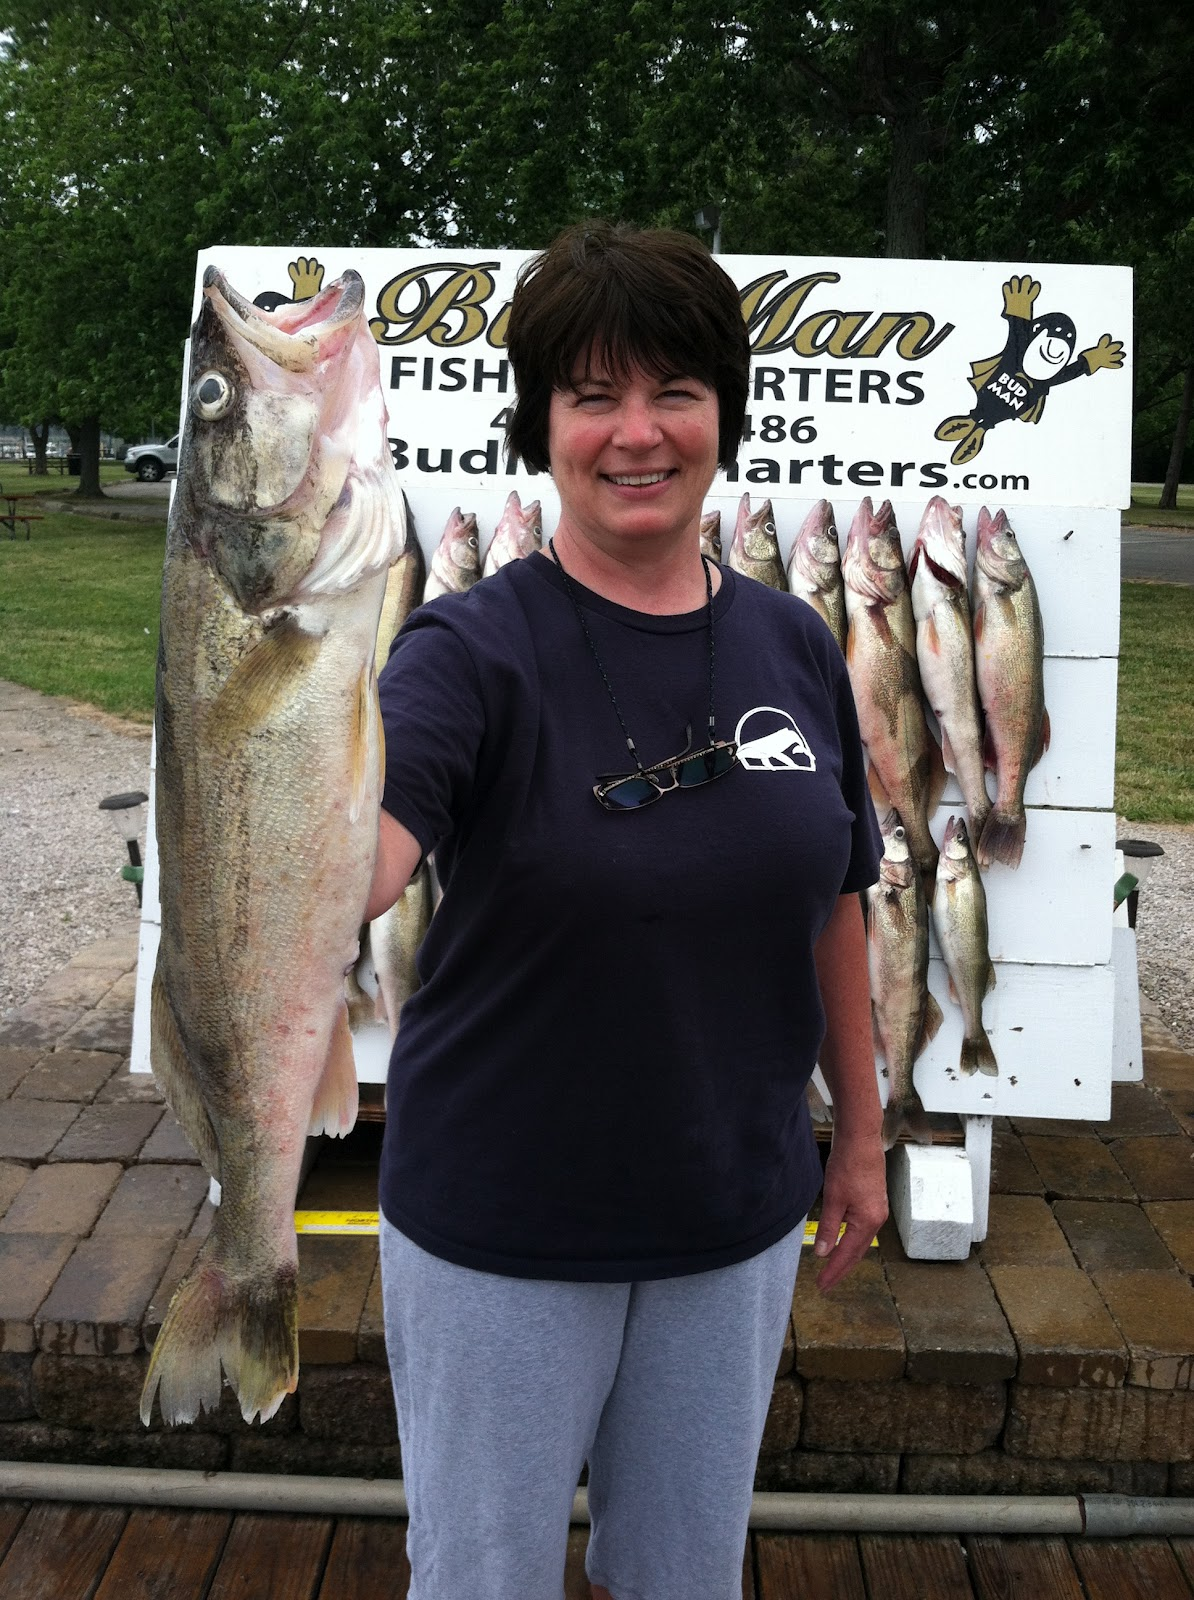 Lake erie walleye fishing reports canadian line east of for Lake erie walleye fishing report